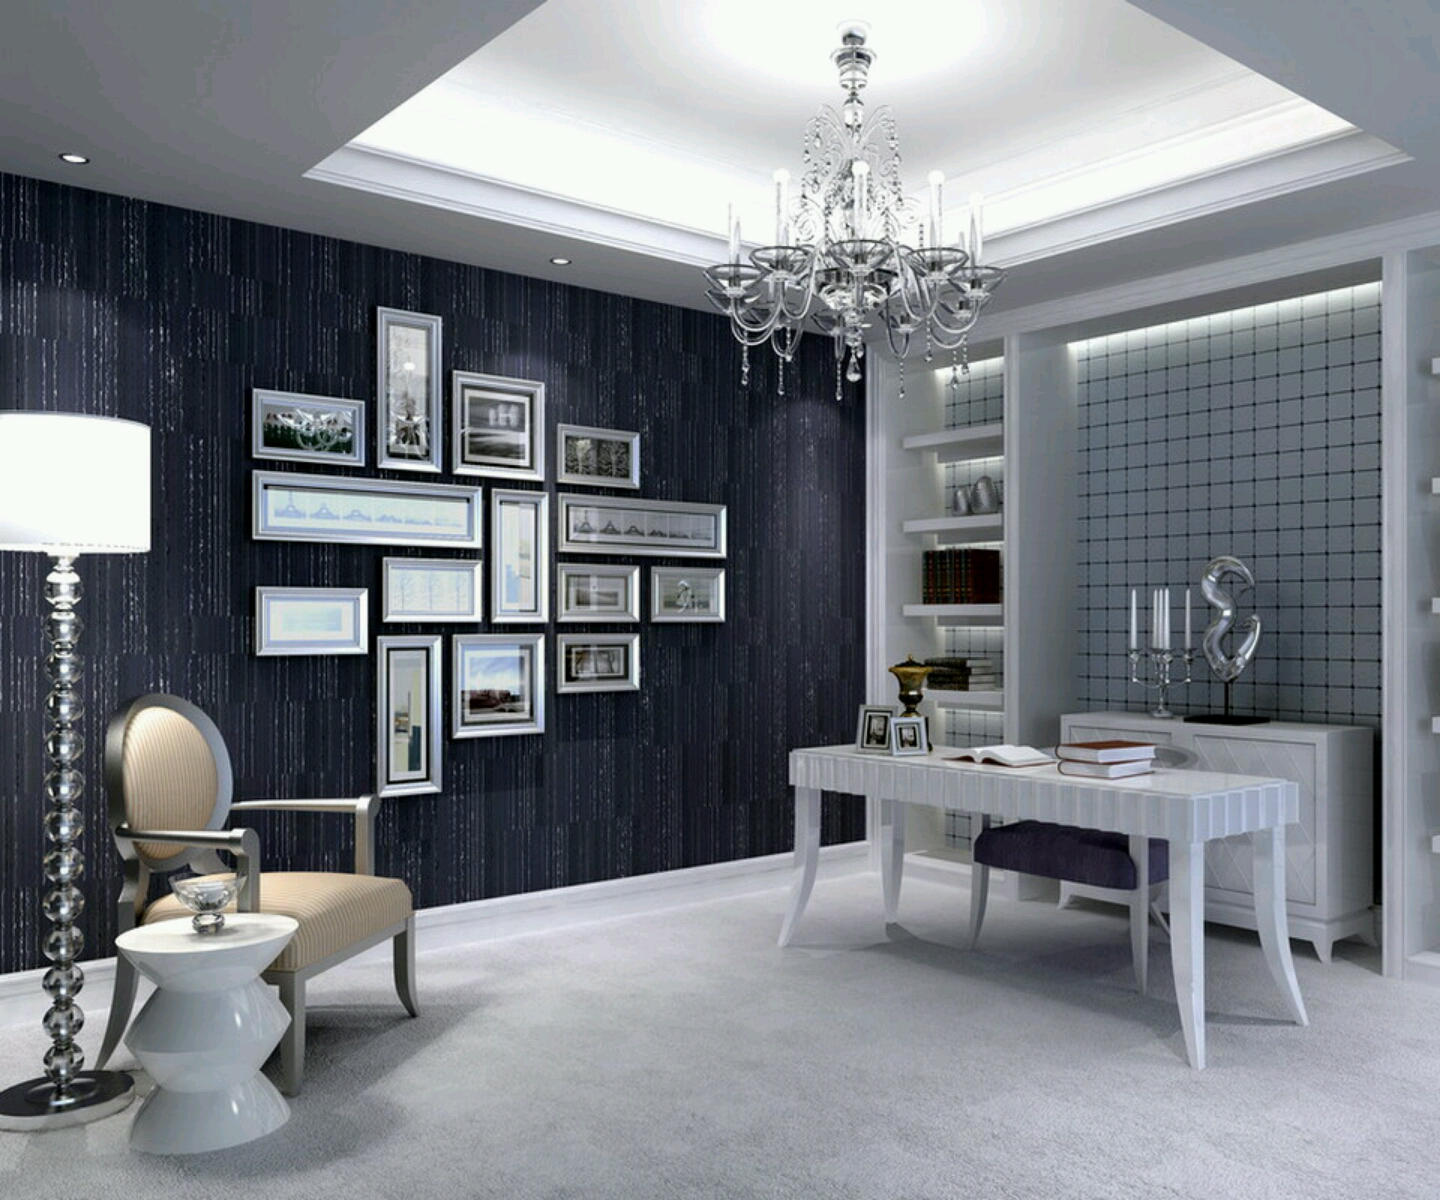 New home designs latest. Modern homes studyrooms interior ...